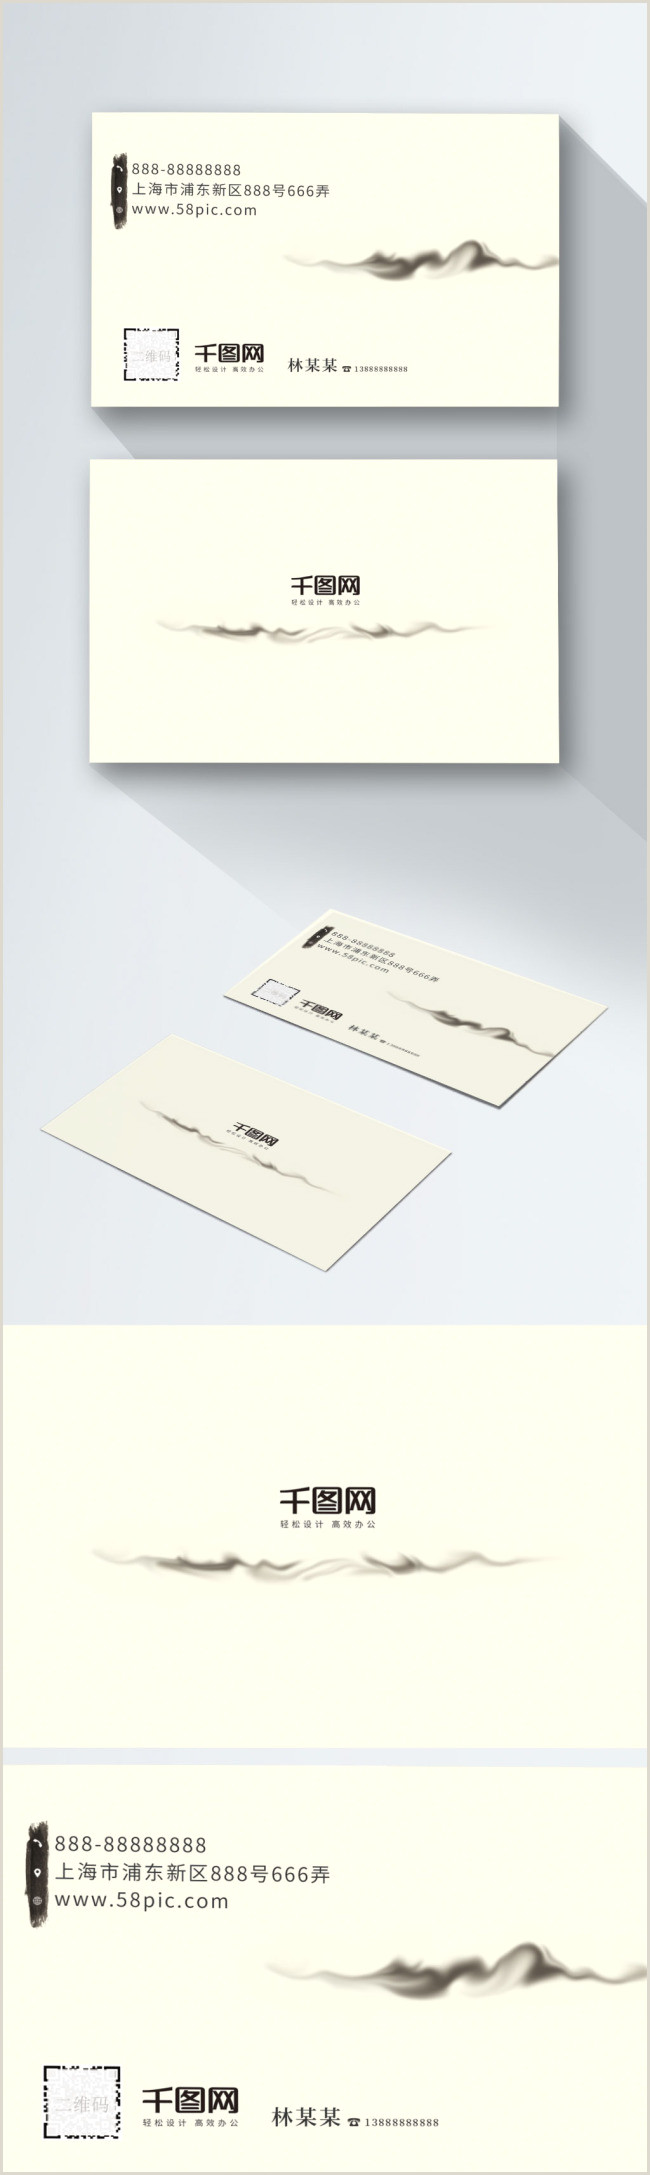 Mini Business Card Template Minimal Business Card Template Image Picture Free